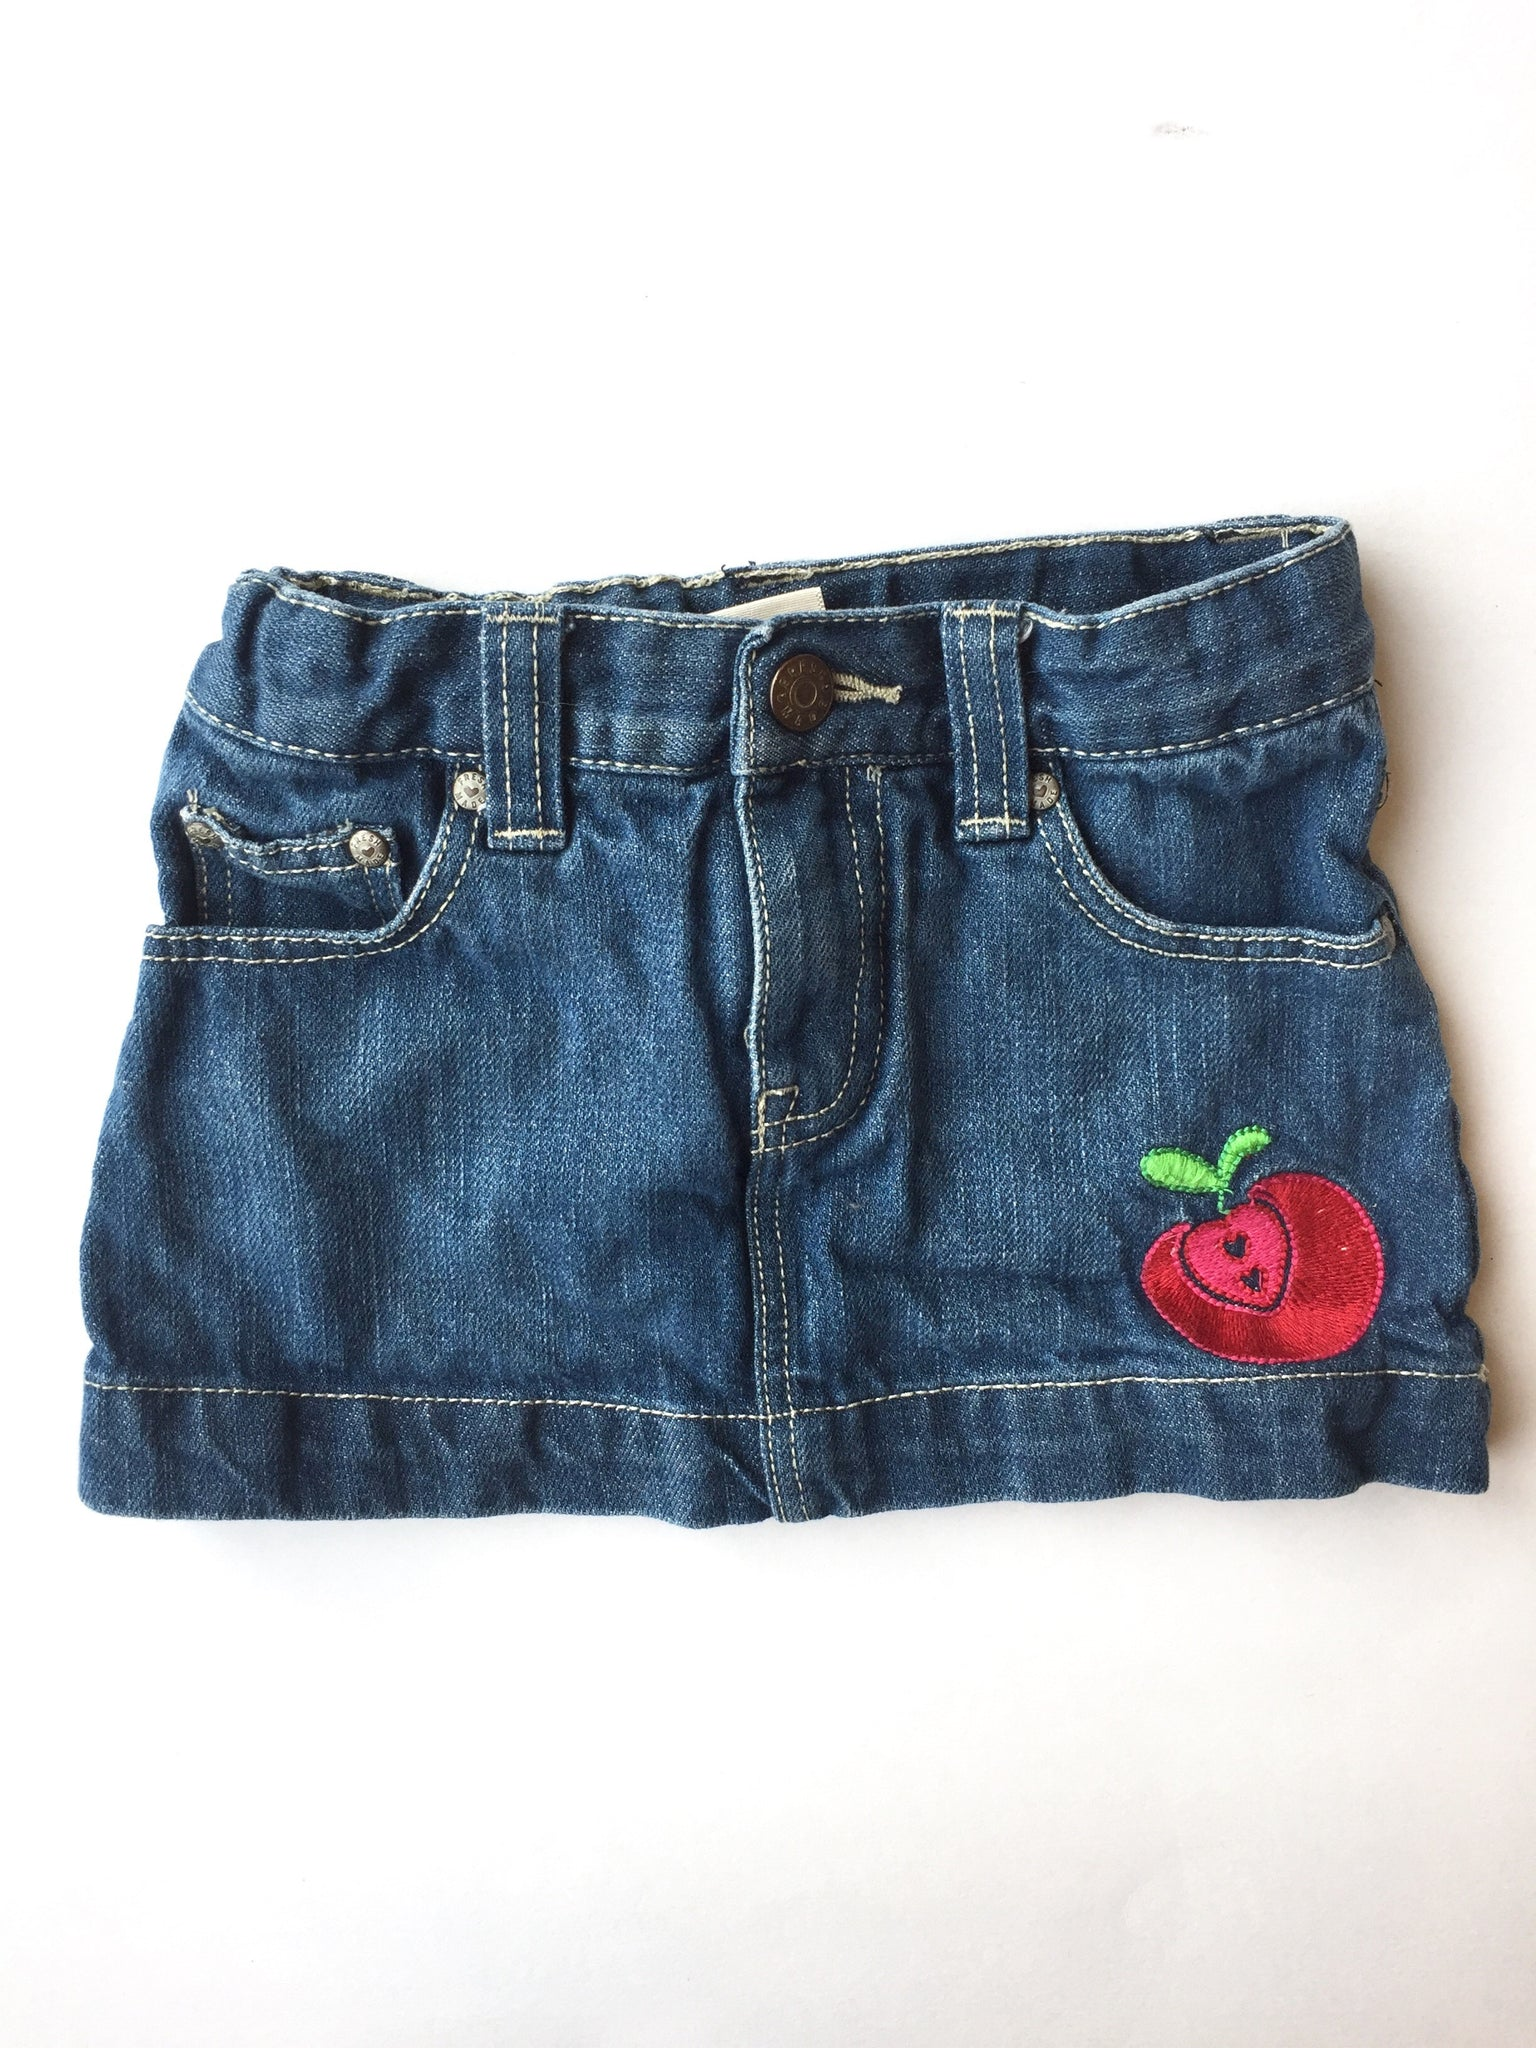 Joe Fresh Skirt | 2T